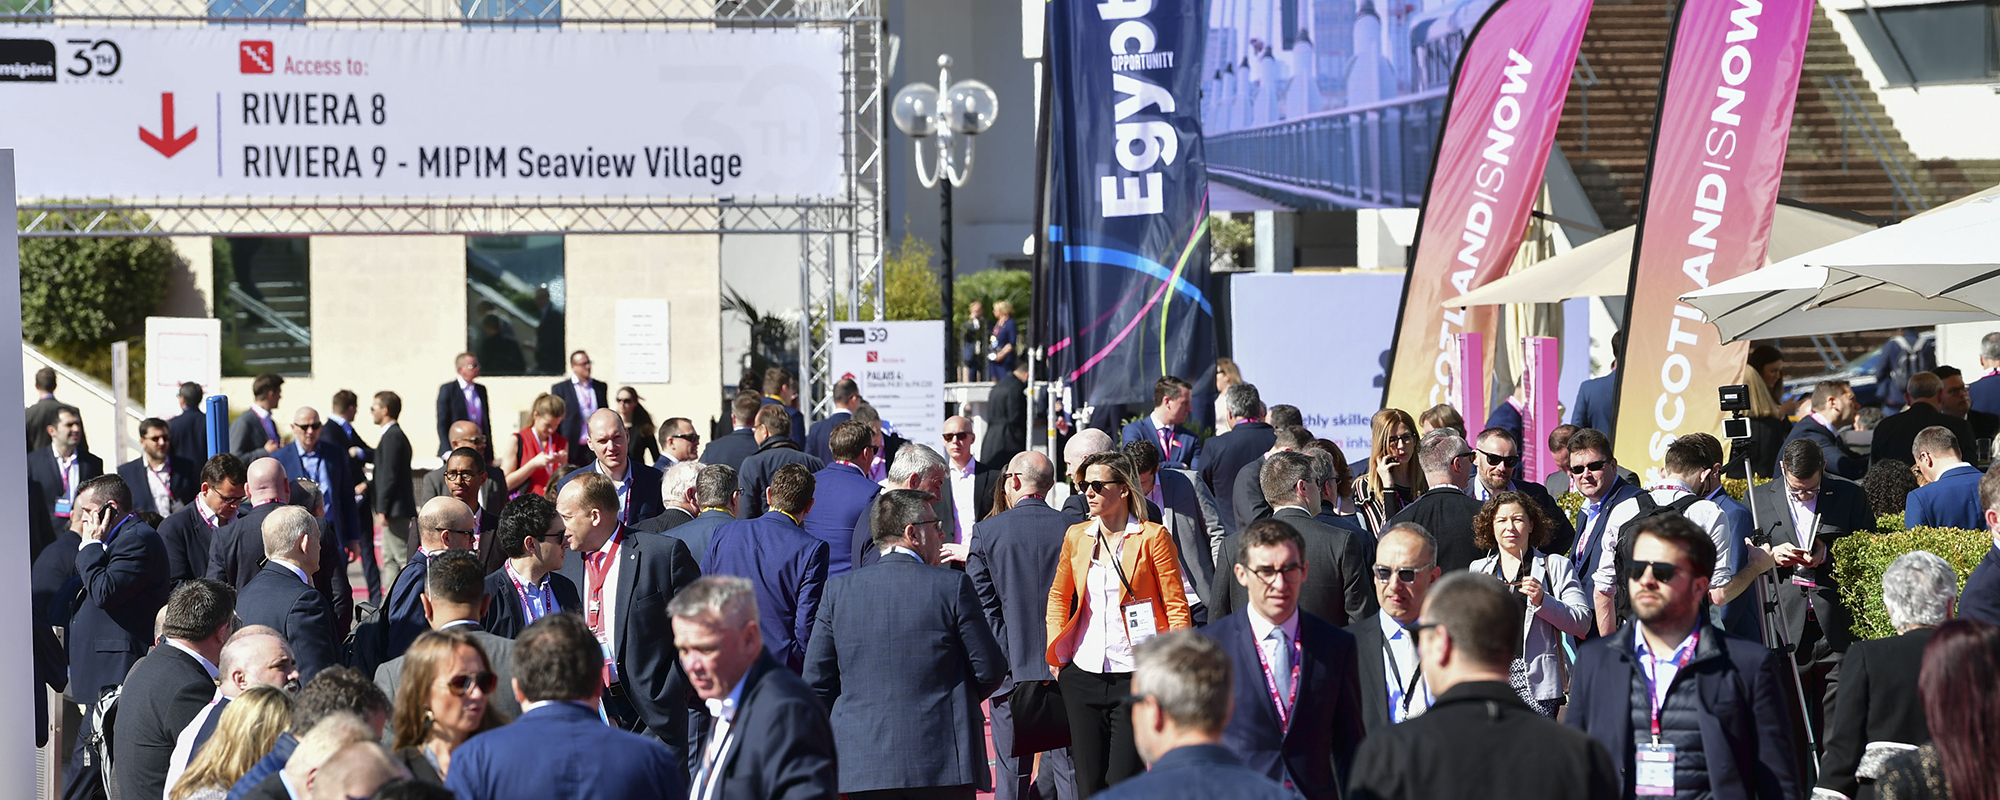 The atmosphere at Mipim, Cannes, in 2019